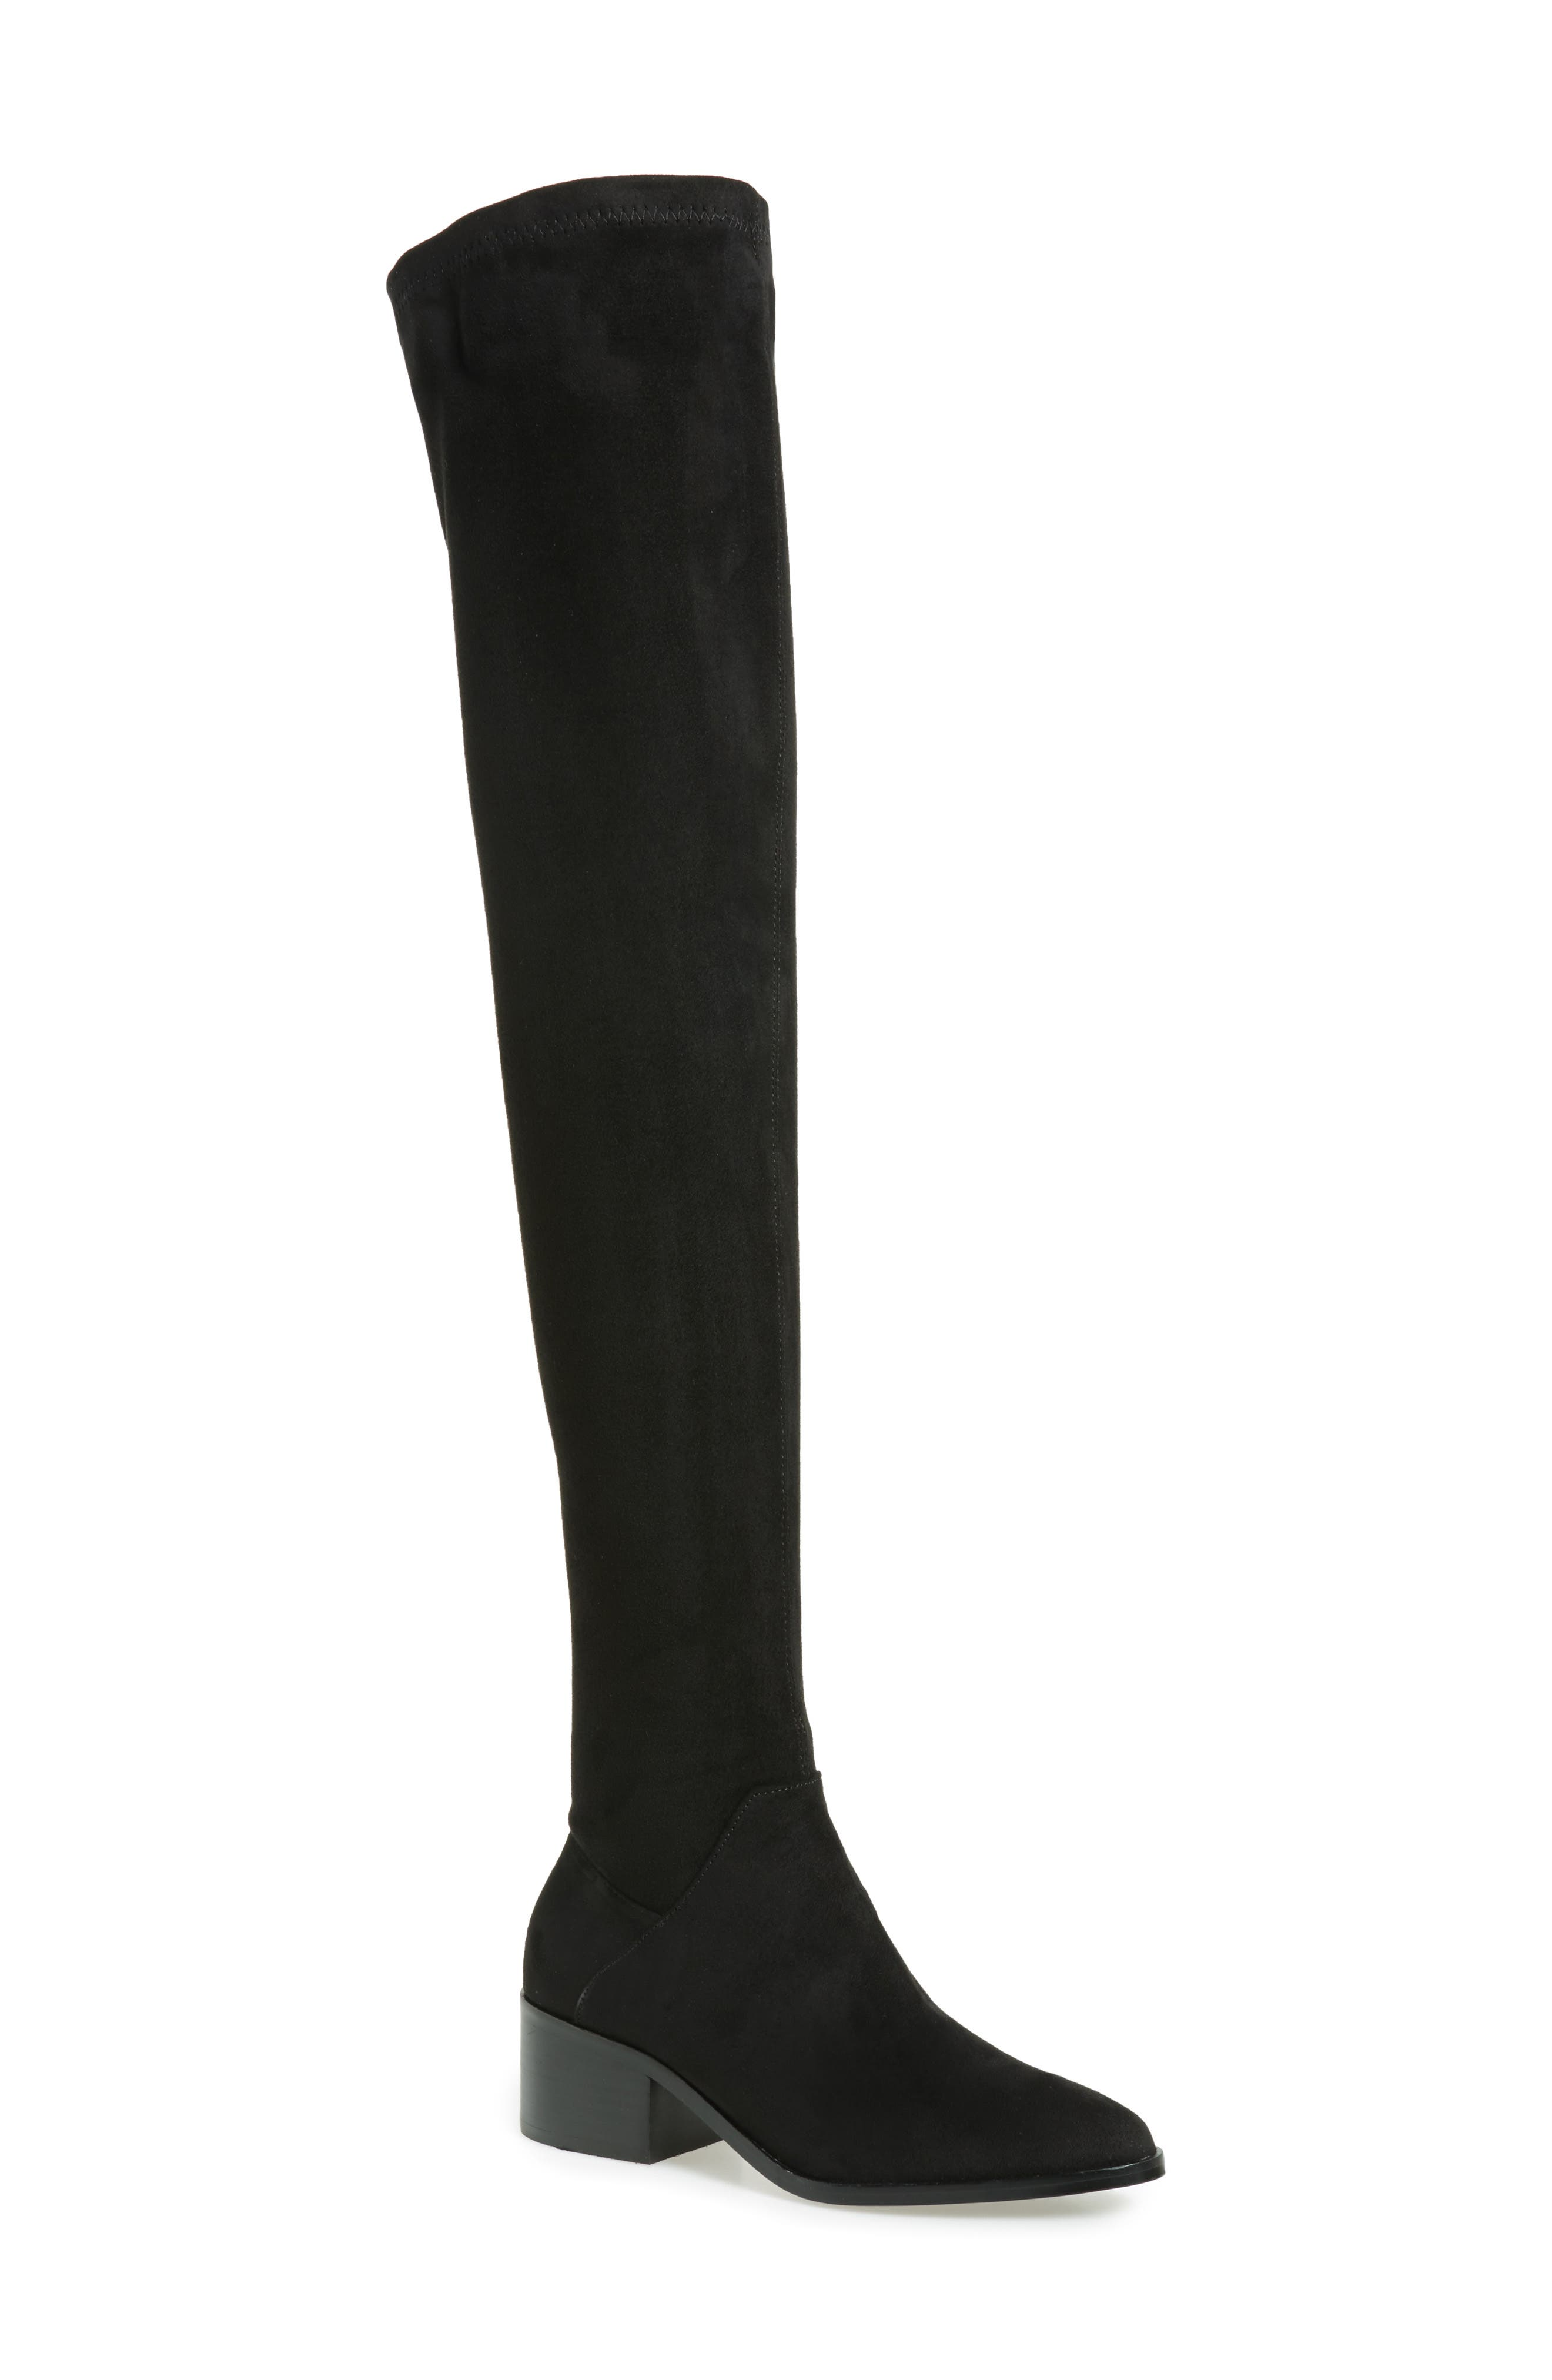 STEVE MADDEN Gabriana Stretch Over the Knee Boot, Main, color, 001